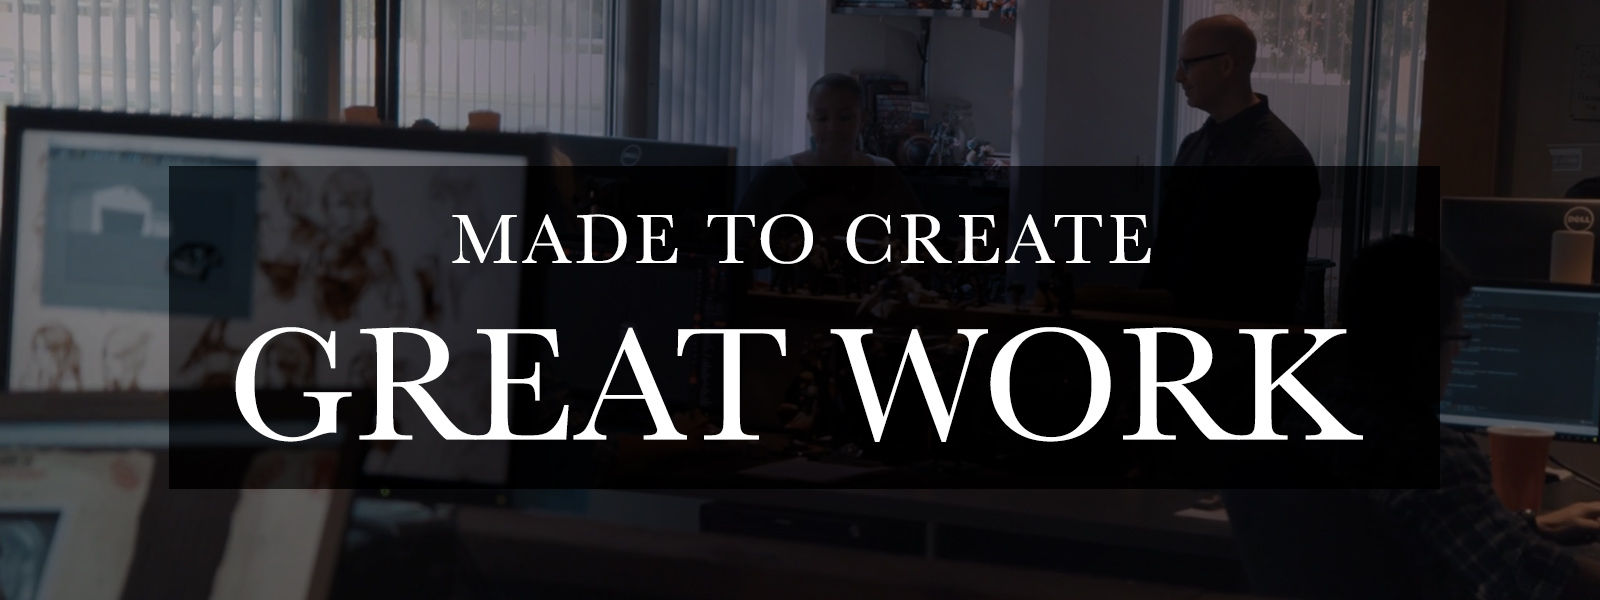 Made to Create Great Work